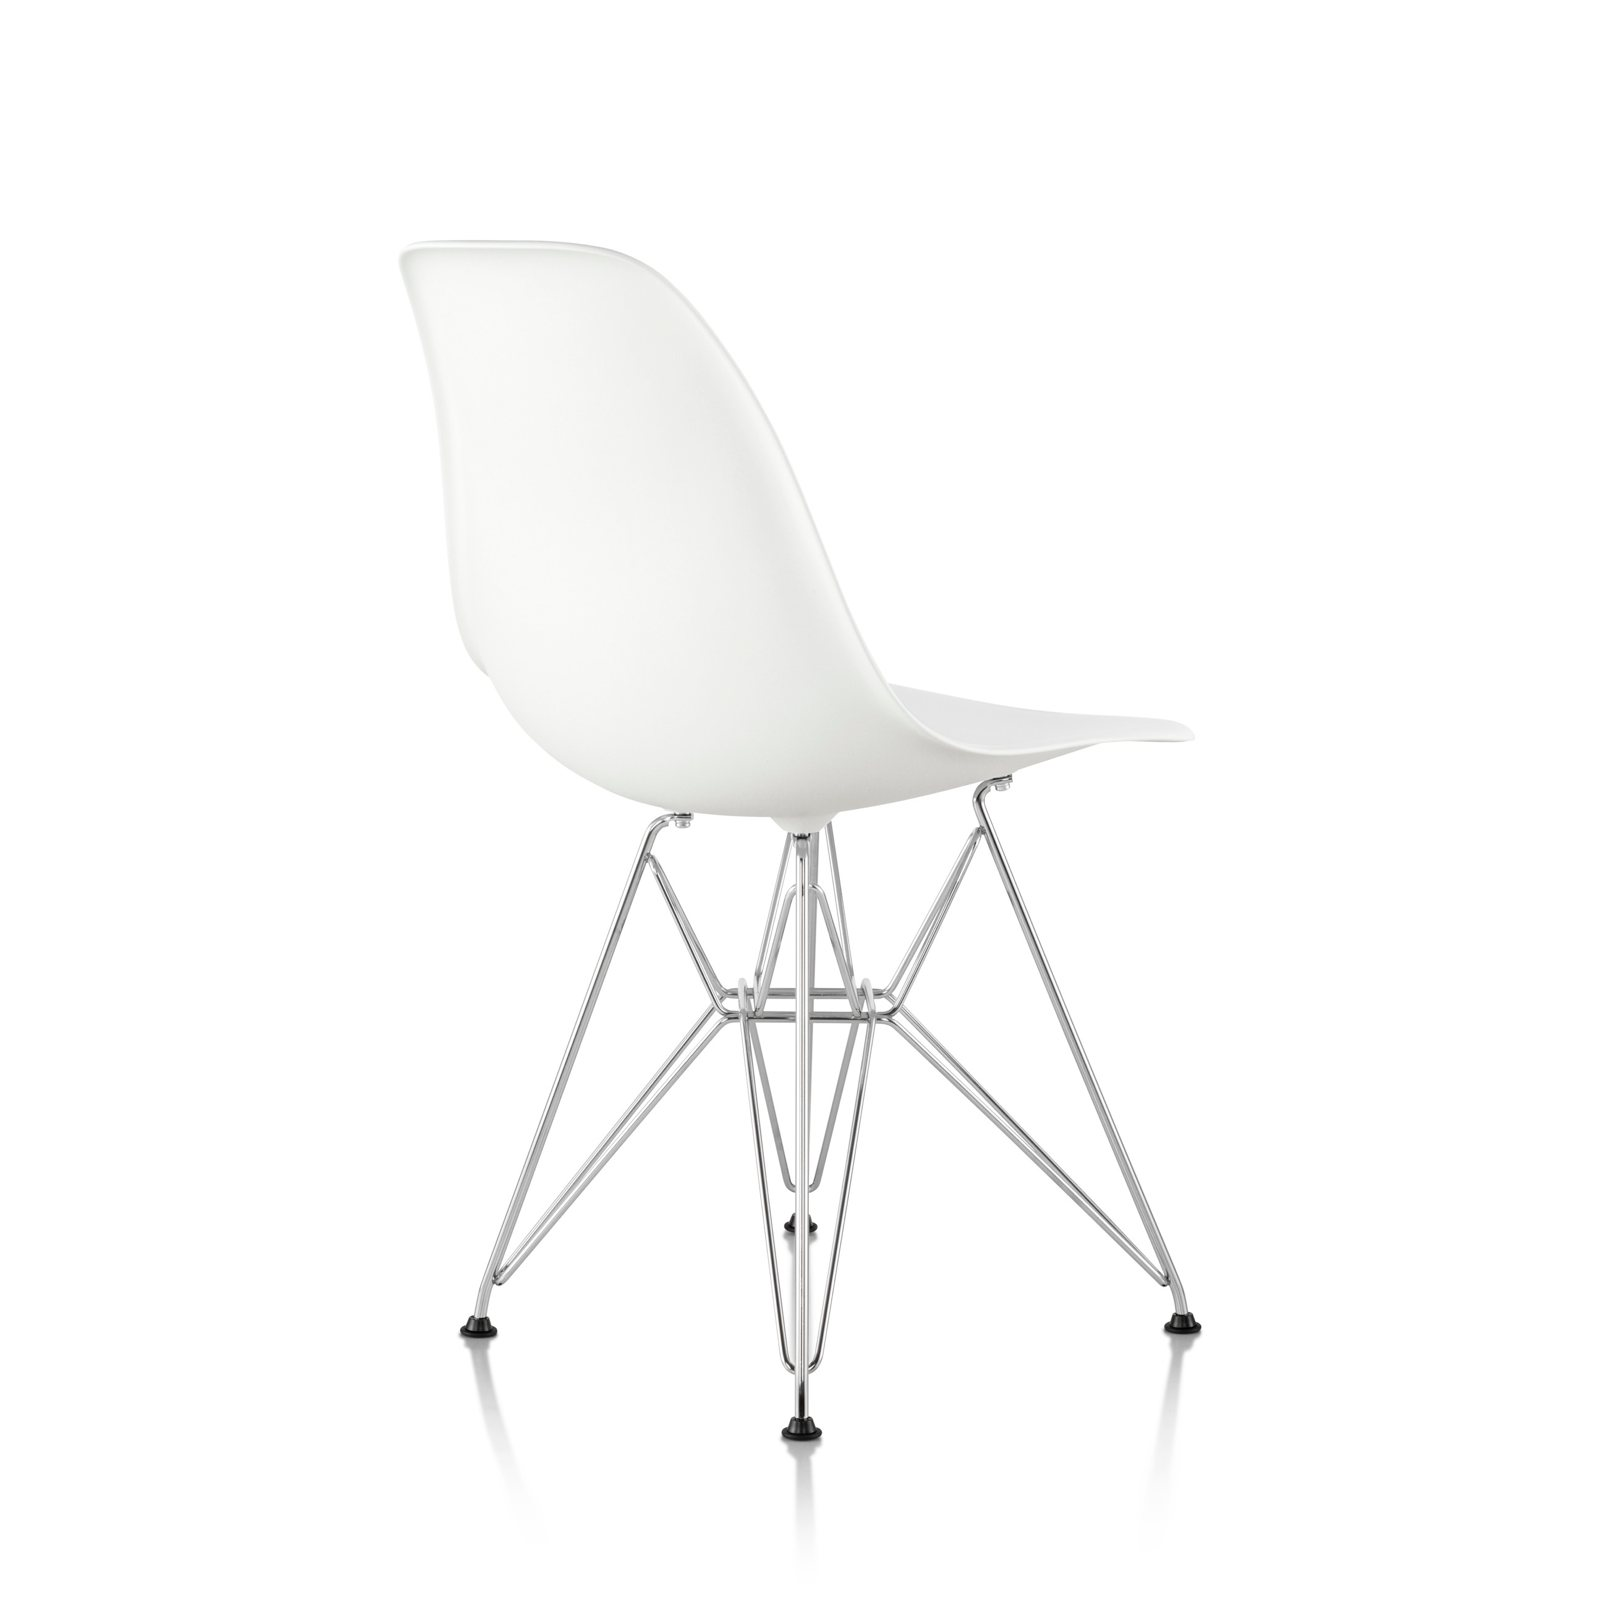 Eames Molded Plastic Side Chair Wire Base by Charles amp Ray  : eames molded plastic side chair wire base 6 57712 from upinteriors.com size 1600 x 1600 jpeg 48kB